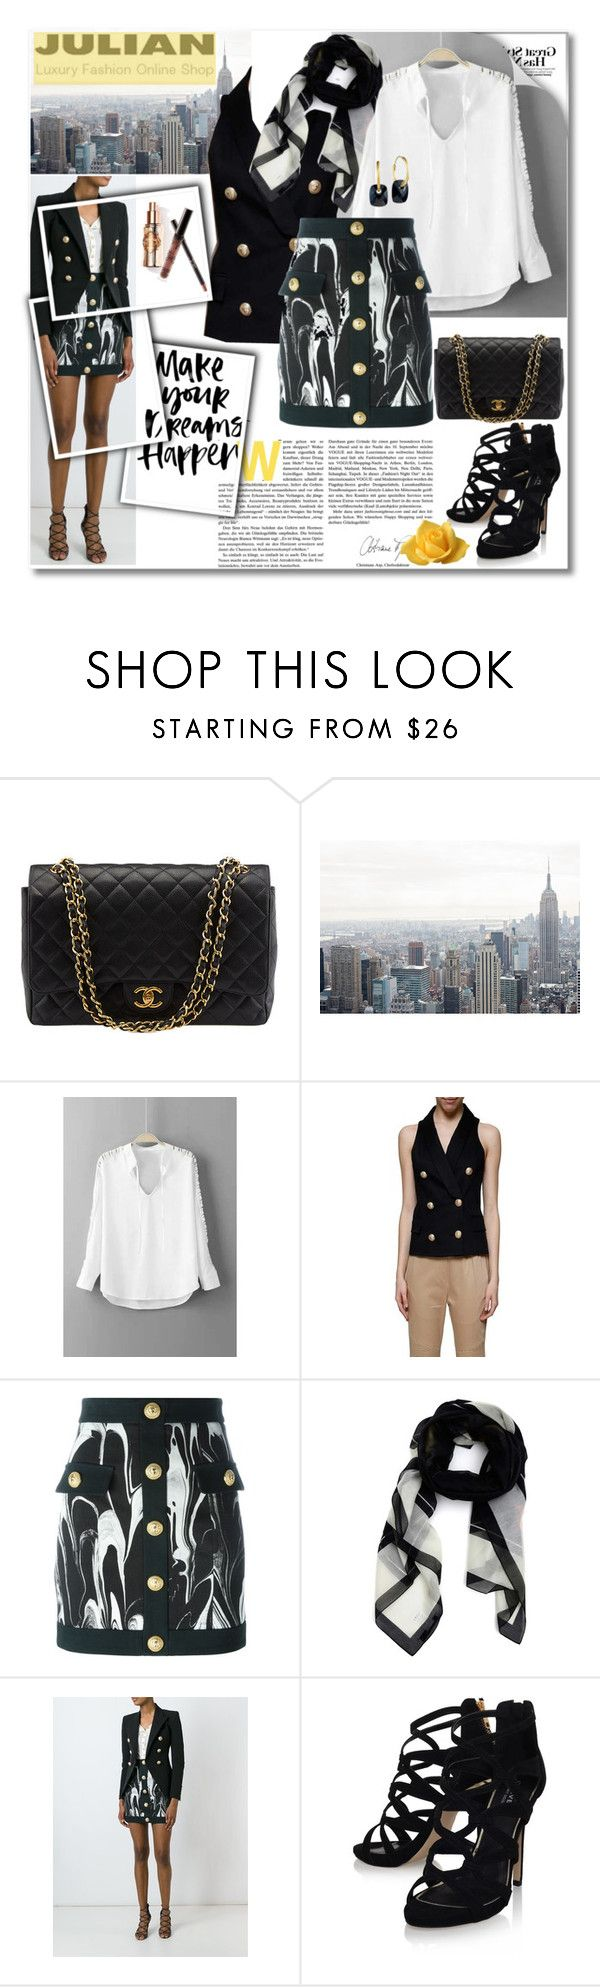 """JULIAN FASHION: Contest with prize"" by andrea2andare ❤ liked on Polyvore featuring Chanel, Balmain, Givenchy, Carvela Kurt Geiger, Didi Jewellery and Julian"